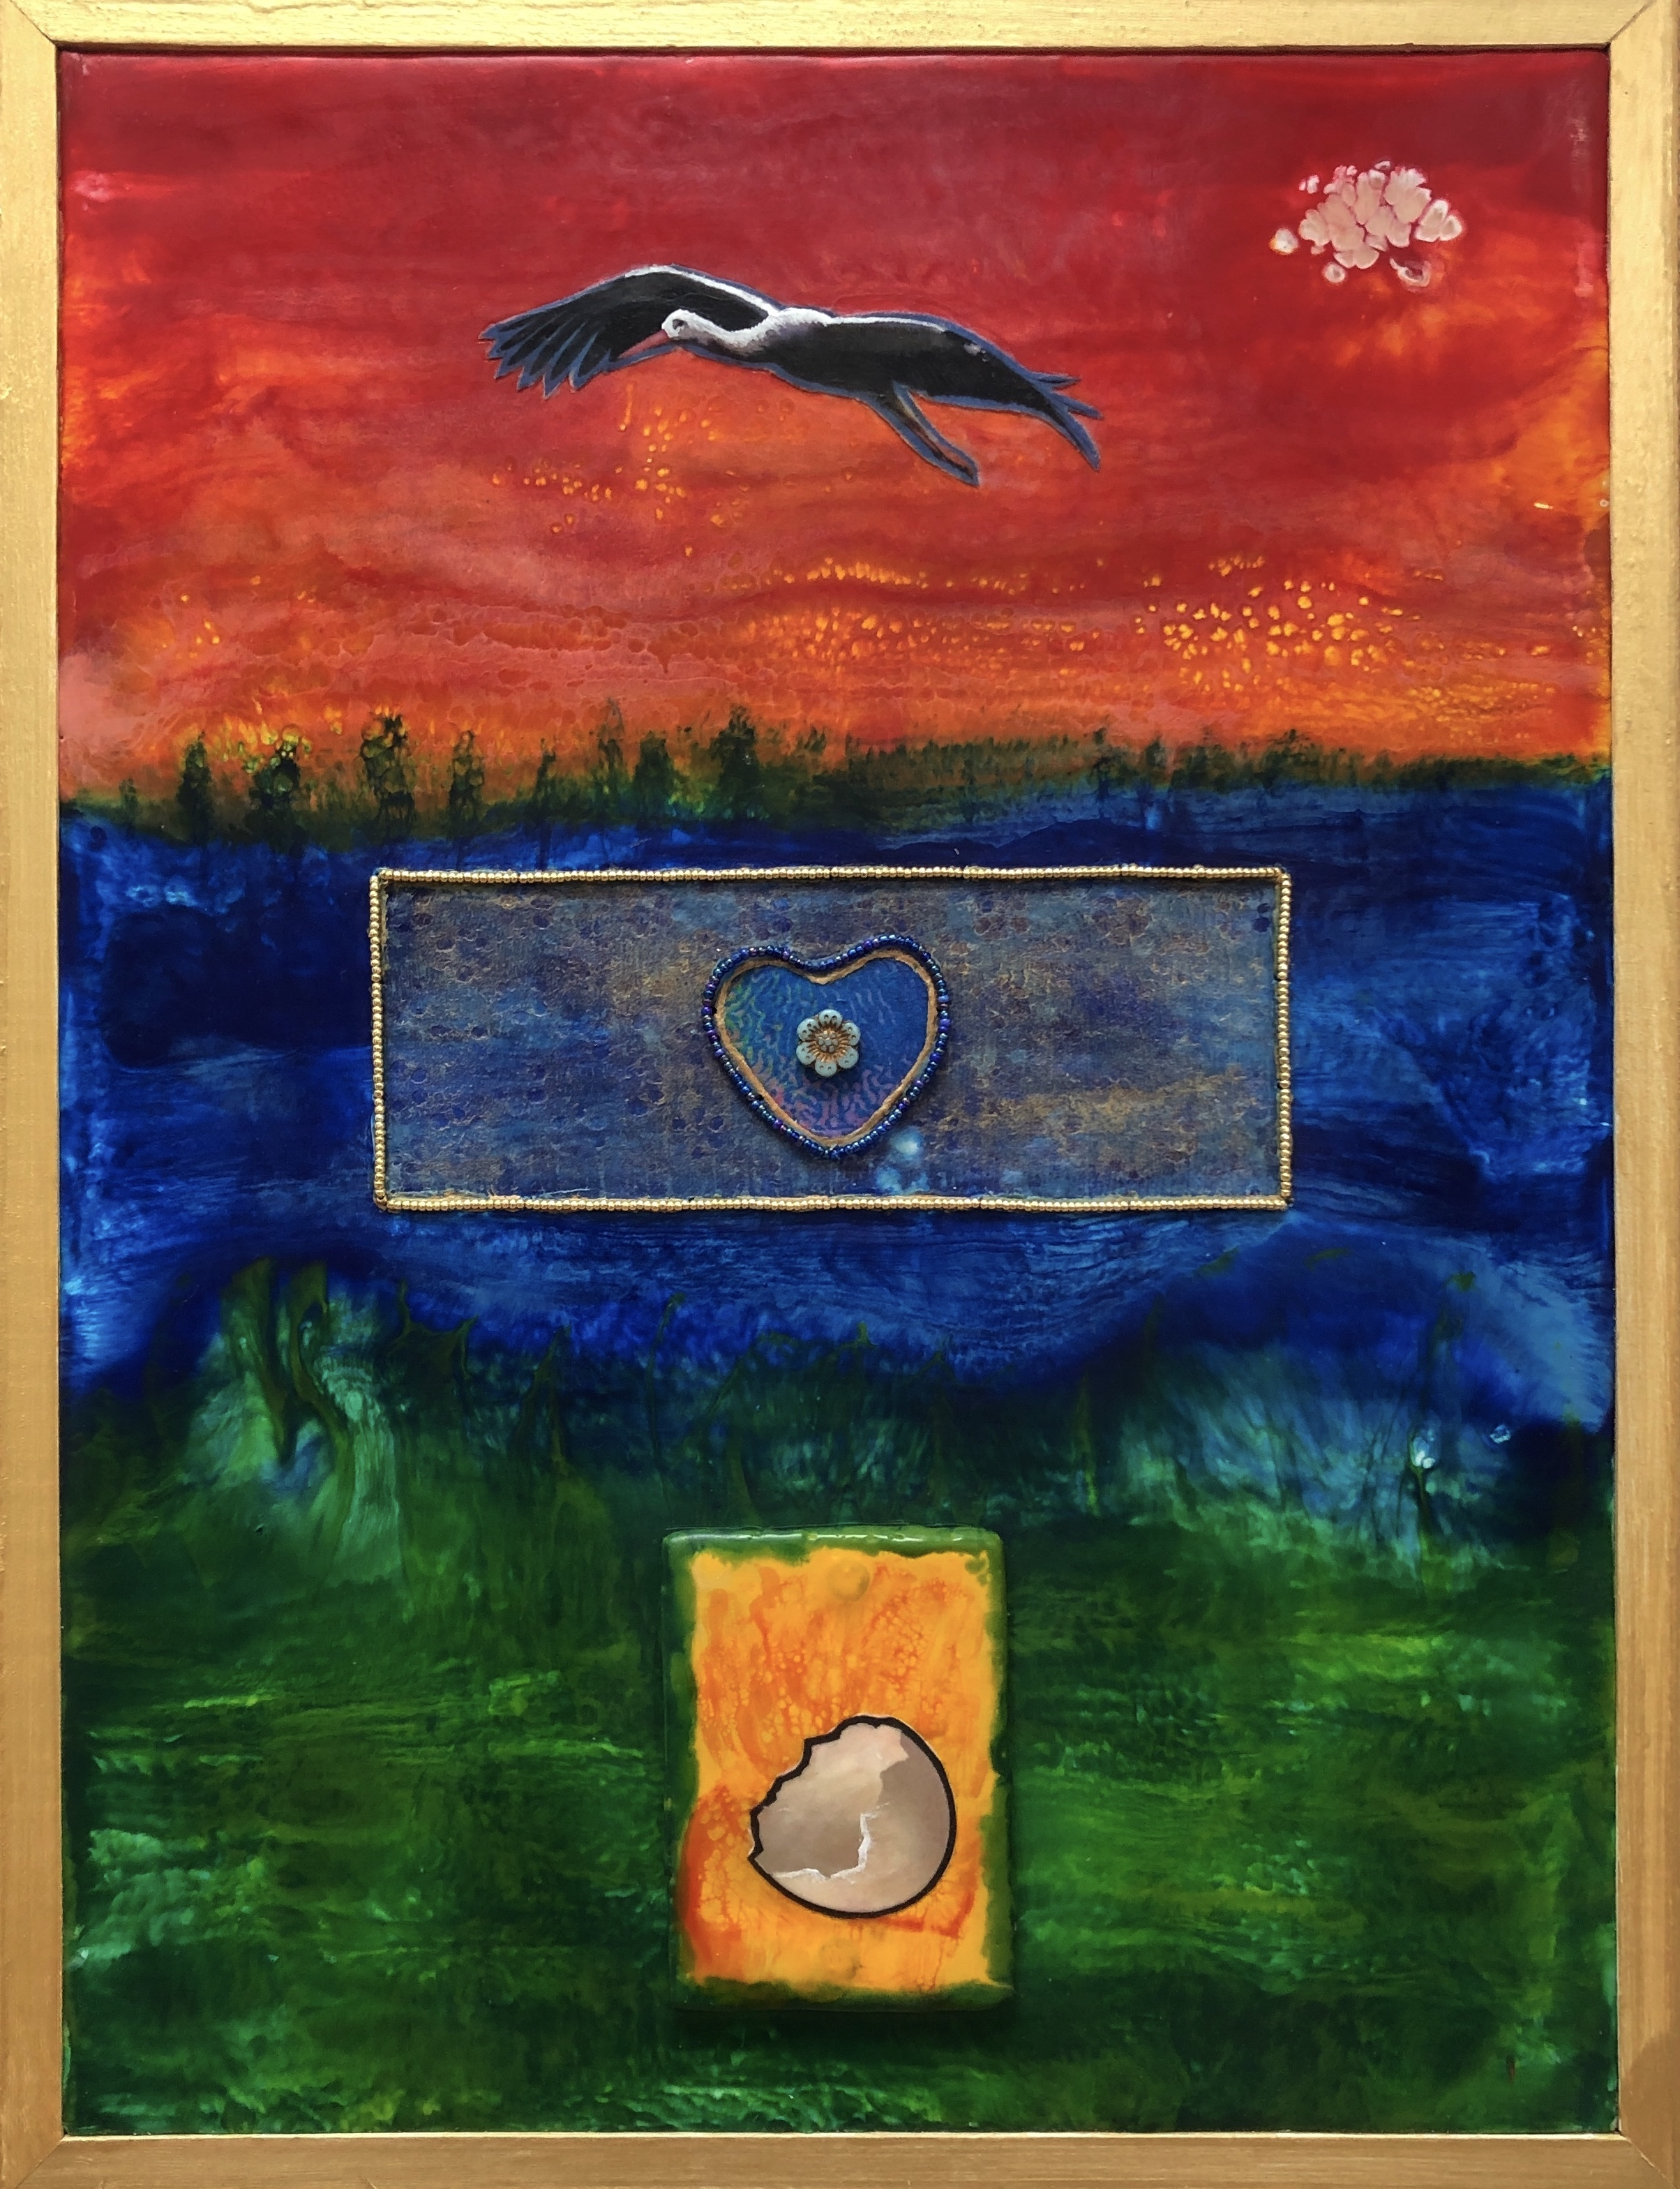 The bold blue, red and green colors are energy of water/sky, fire/sun and earth/ground in The Birth of Love at DebbieMattewArt.com